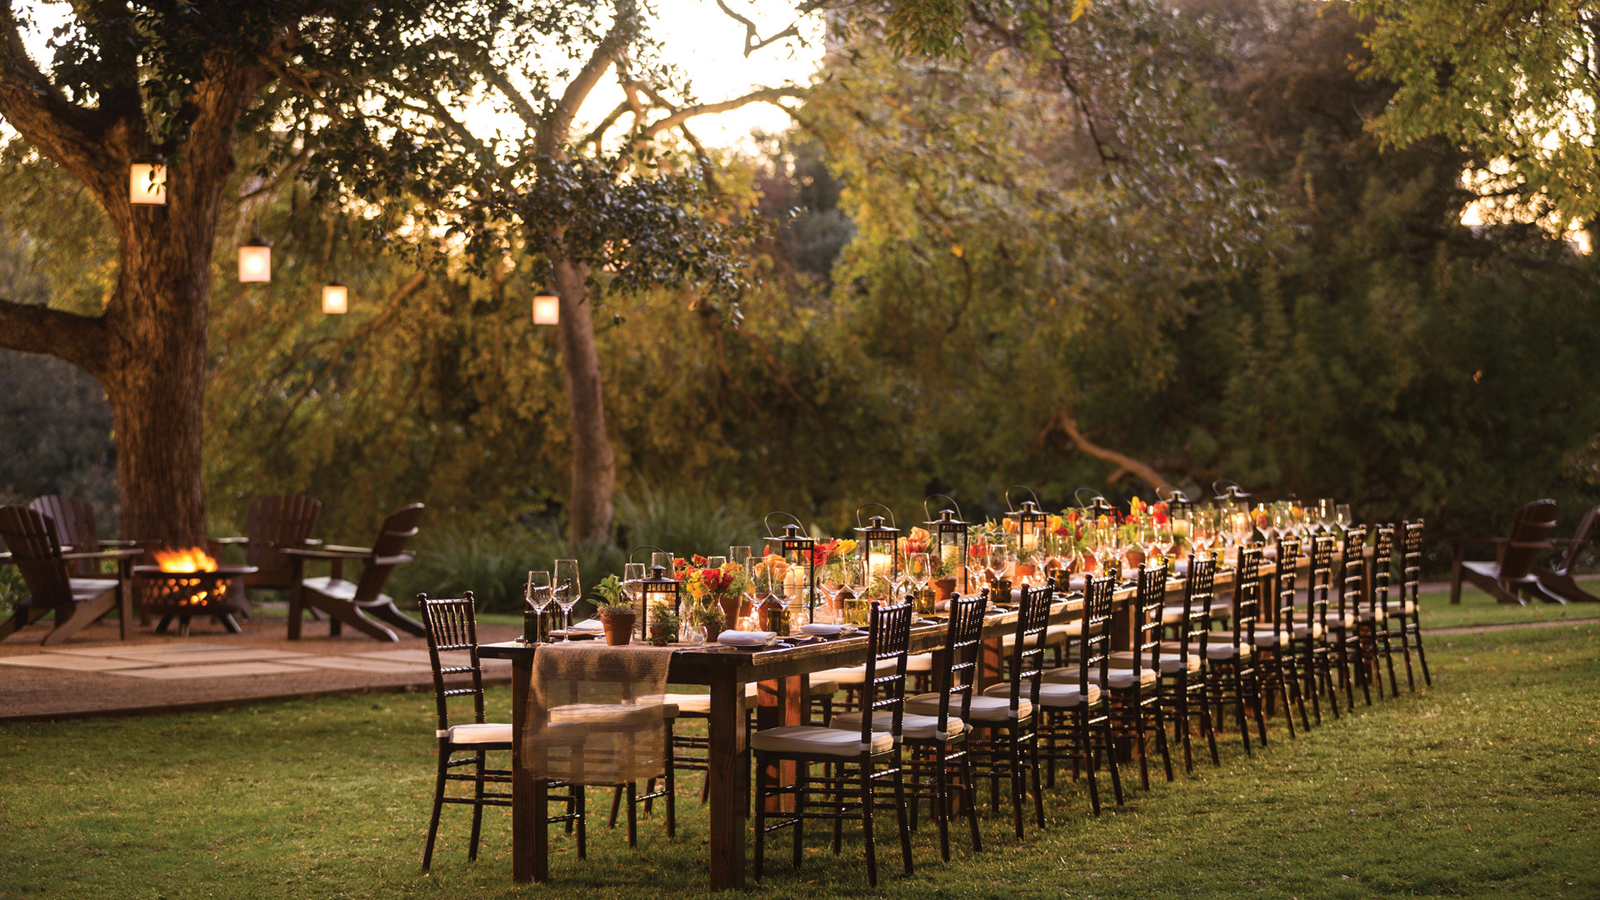 Four Seasons East Lawn. This Beautifully Landscaped Outdoor Venue Is The  Perfect Setting For Wedding Ceremonies, Daytime Garden Parties, Luncheons  Or Themed ...